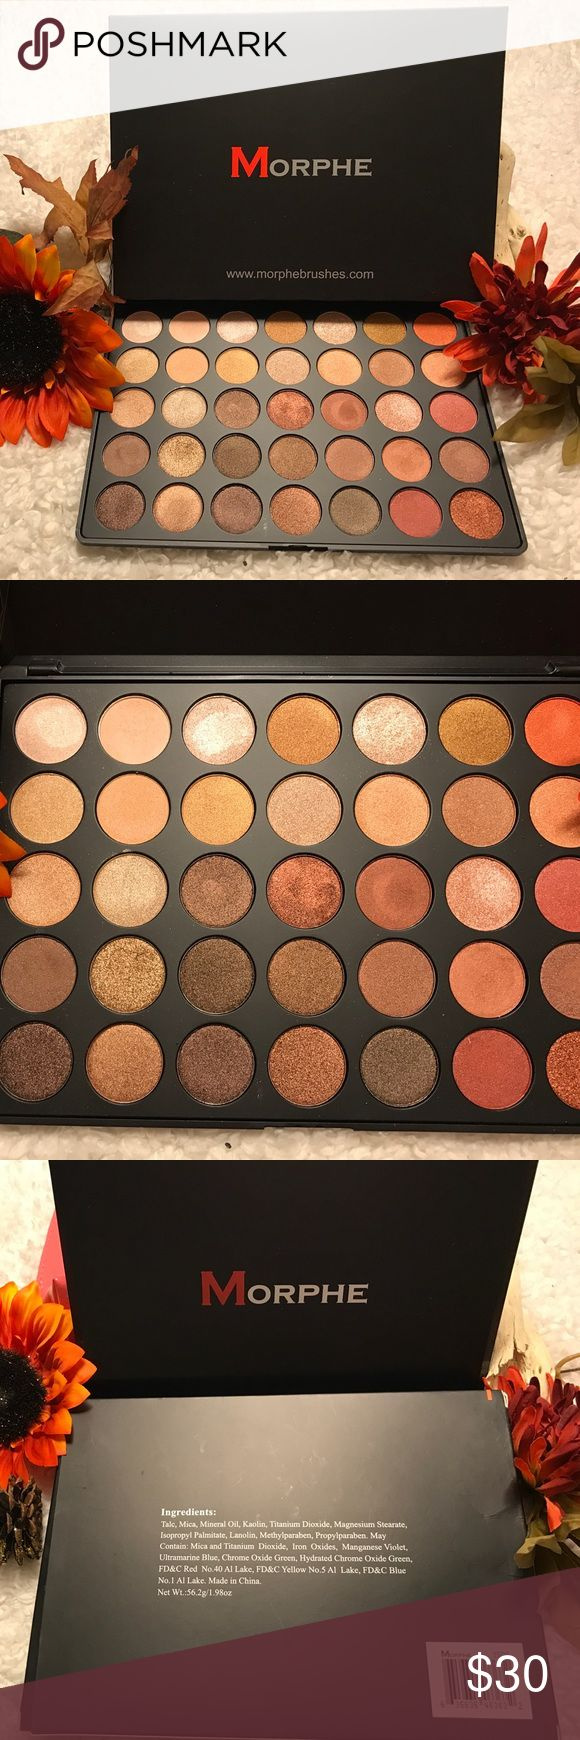 Morphe 350S Pallet! Their best selling pallet!!  Morphe 350S Eyeshadow Pallet!! 35 stunning - super pigmented Shadows!! These bad boys are buttery soft and full of color!! Most never touched and a few swatched only! Free gifts with purchase!!  listed under Mac for exposure only*. Bundle and save- make me an offer!! ❤️❤️ MAC Cosmetics Makeup Eyeshadow